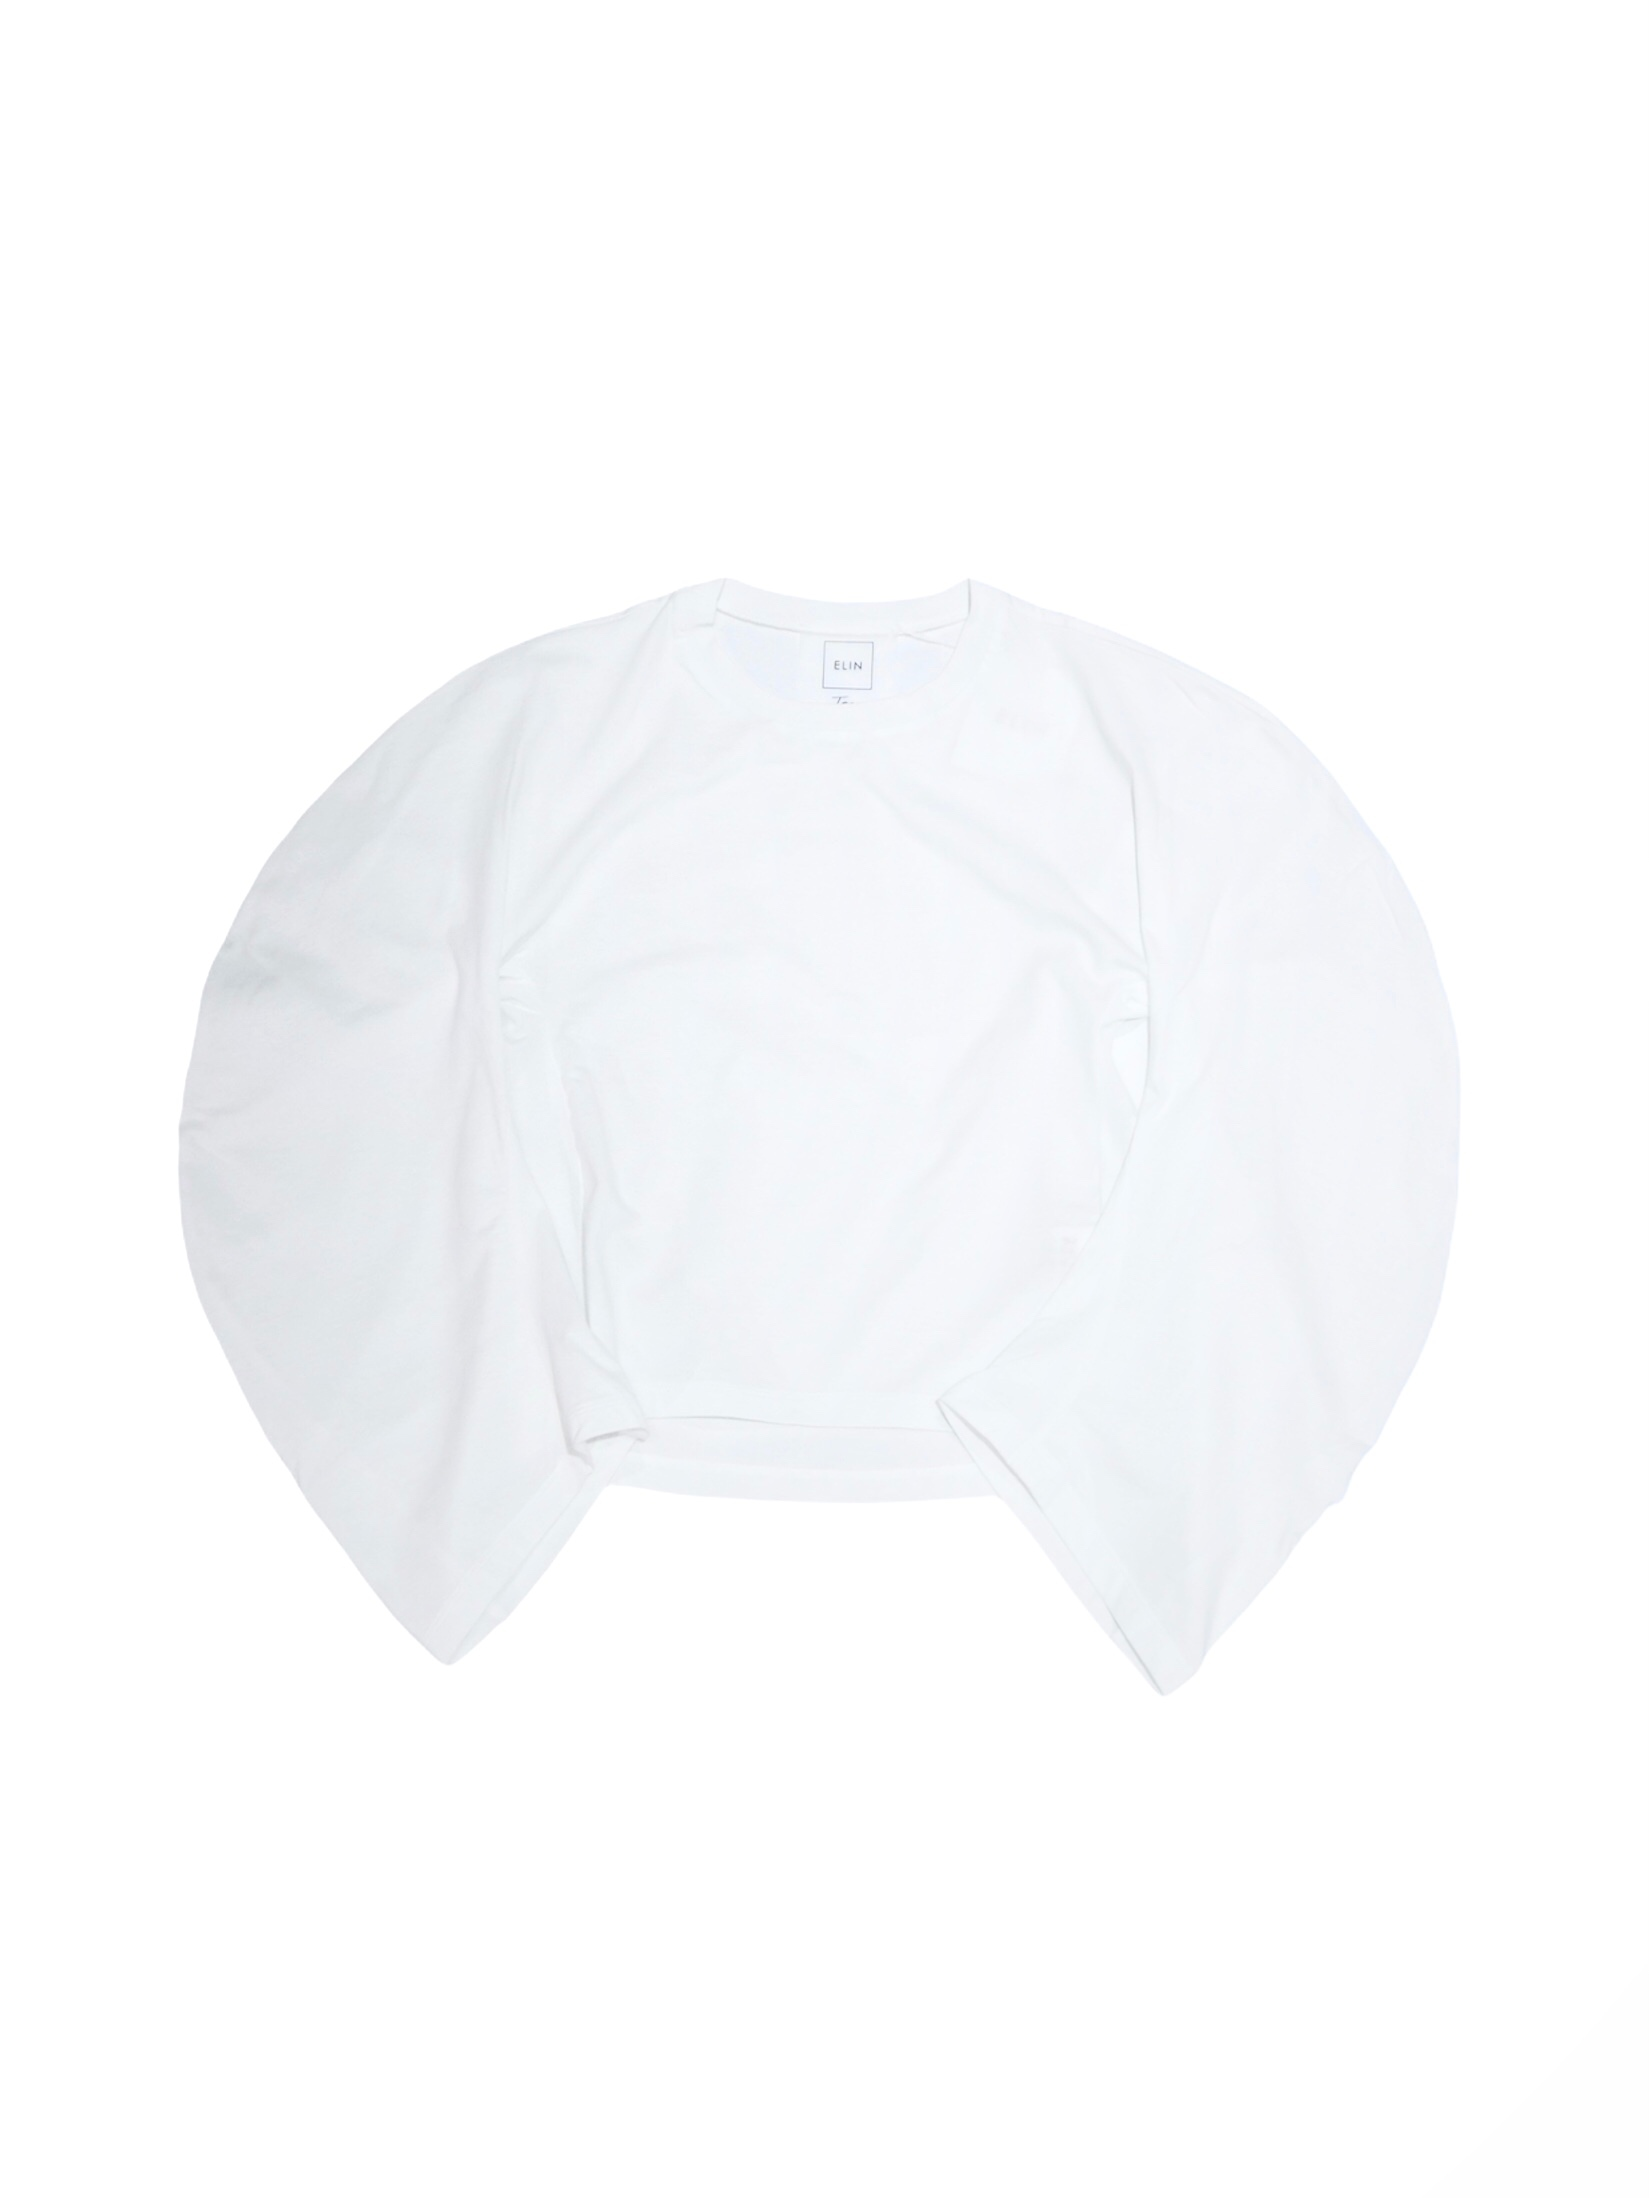 【ELIN】CIRCLE SLEEVE TOP